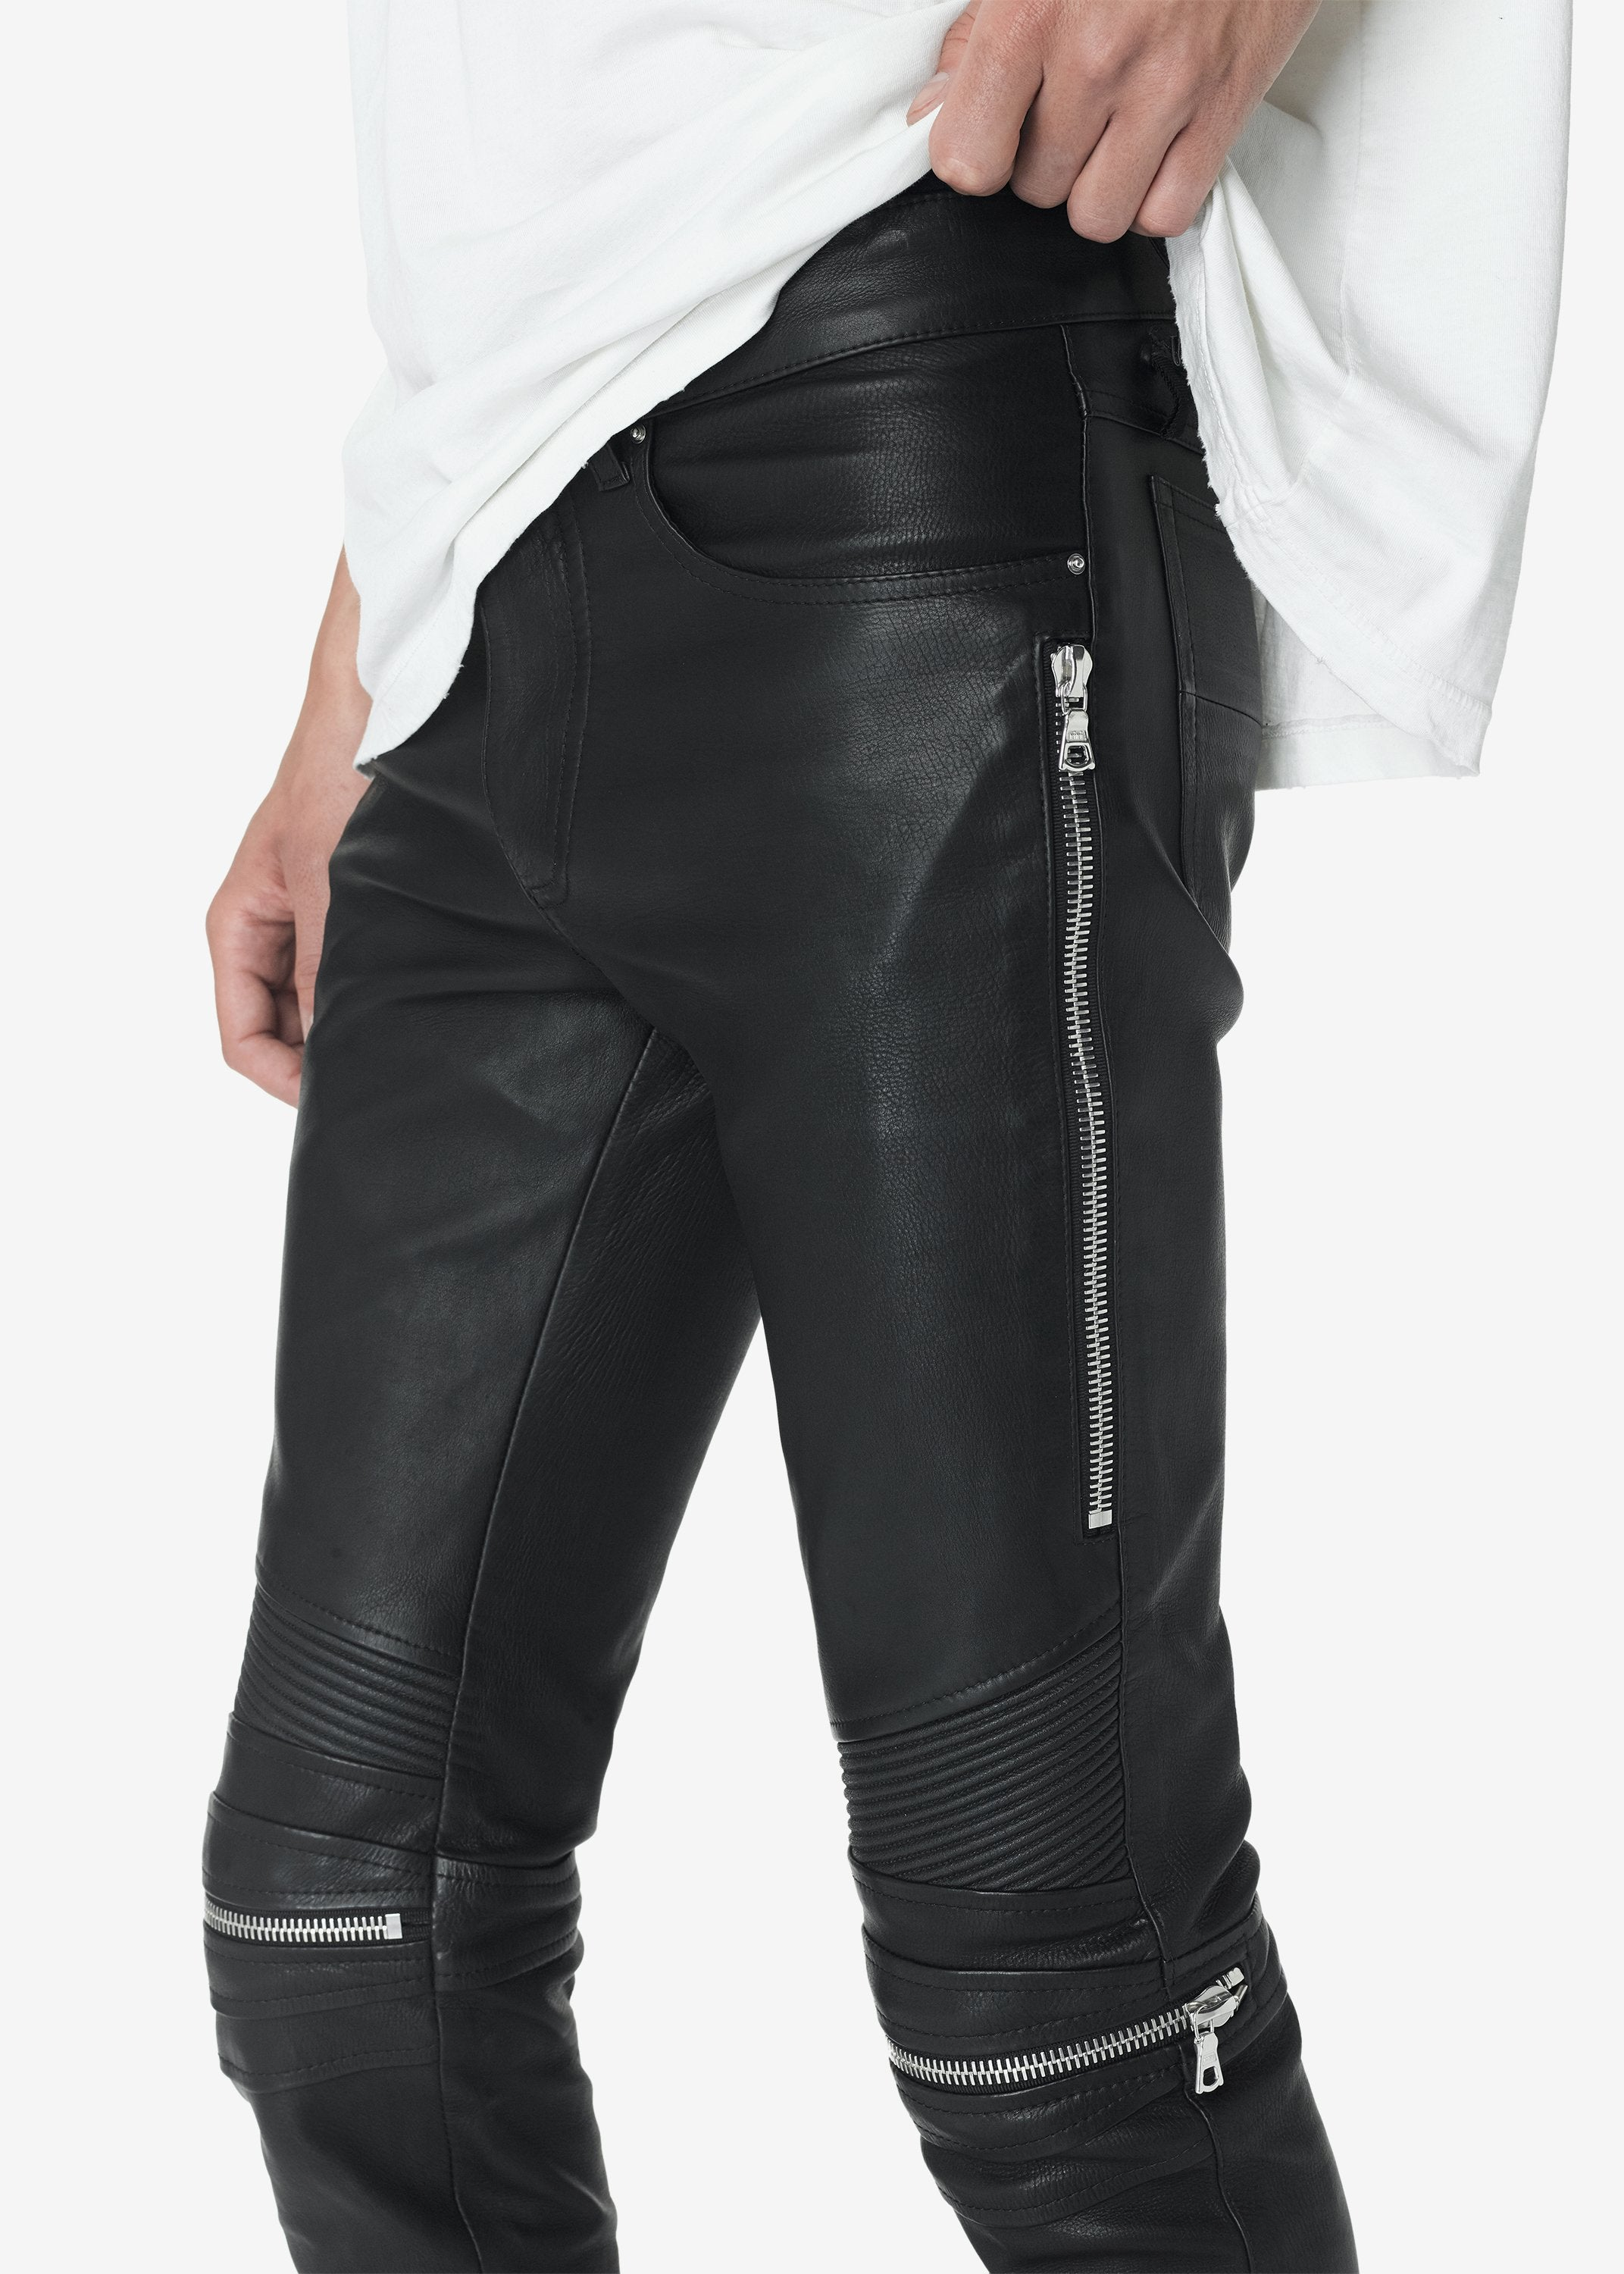 mx2-leather-pants-black-silver-image-5